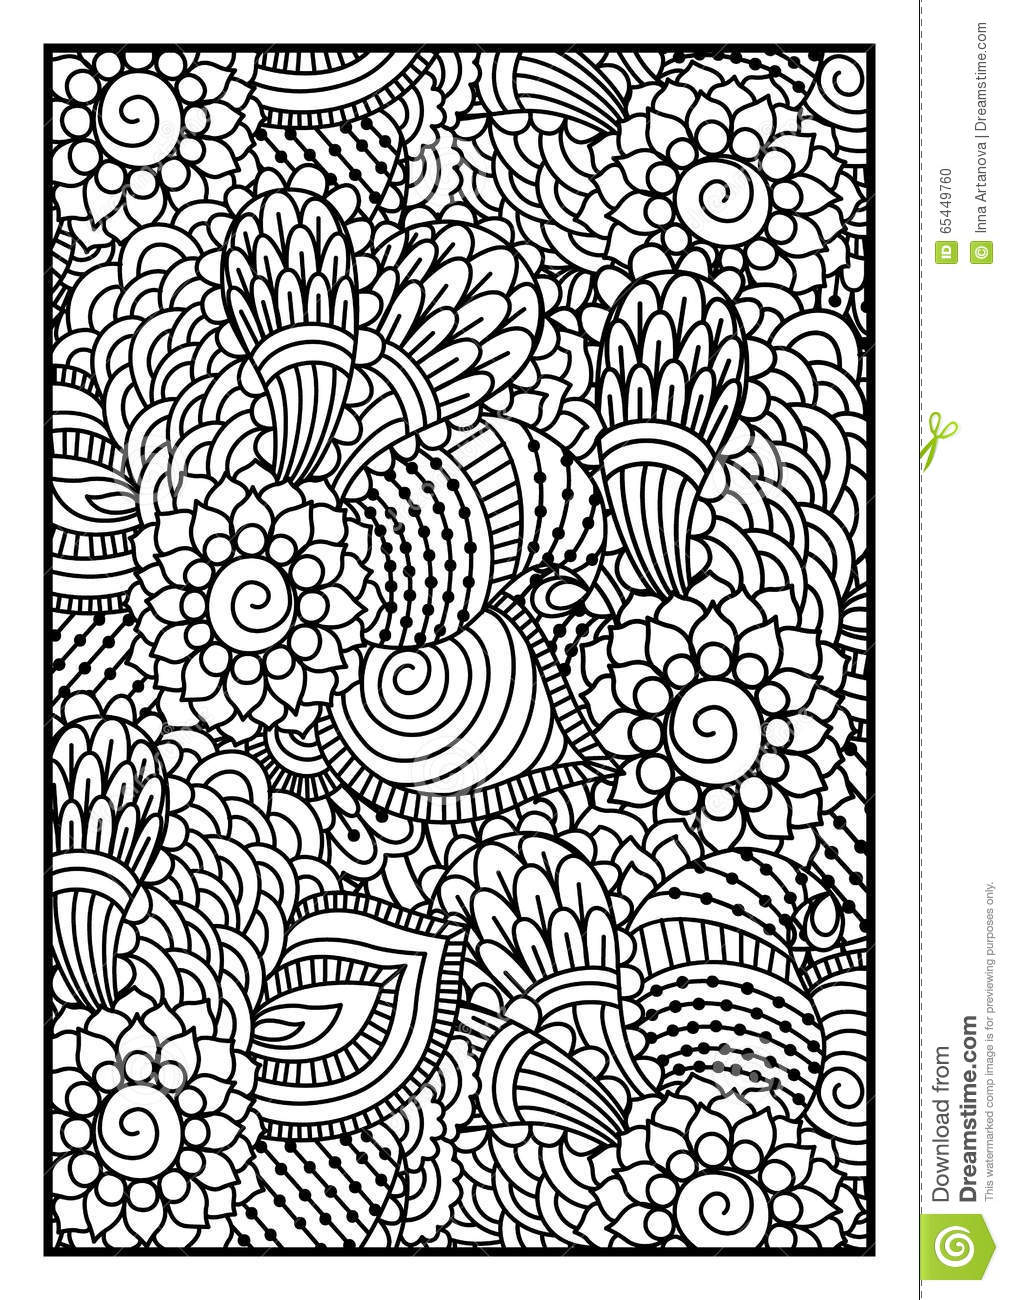 Book Cover Black And White Design : Black and white pattern stock vector illustration of